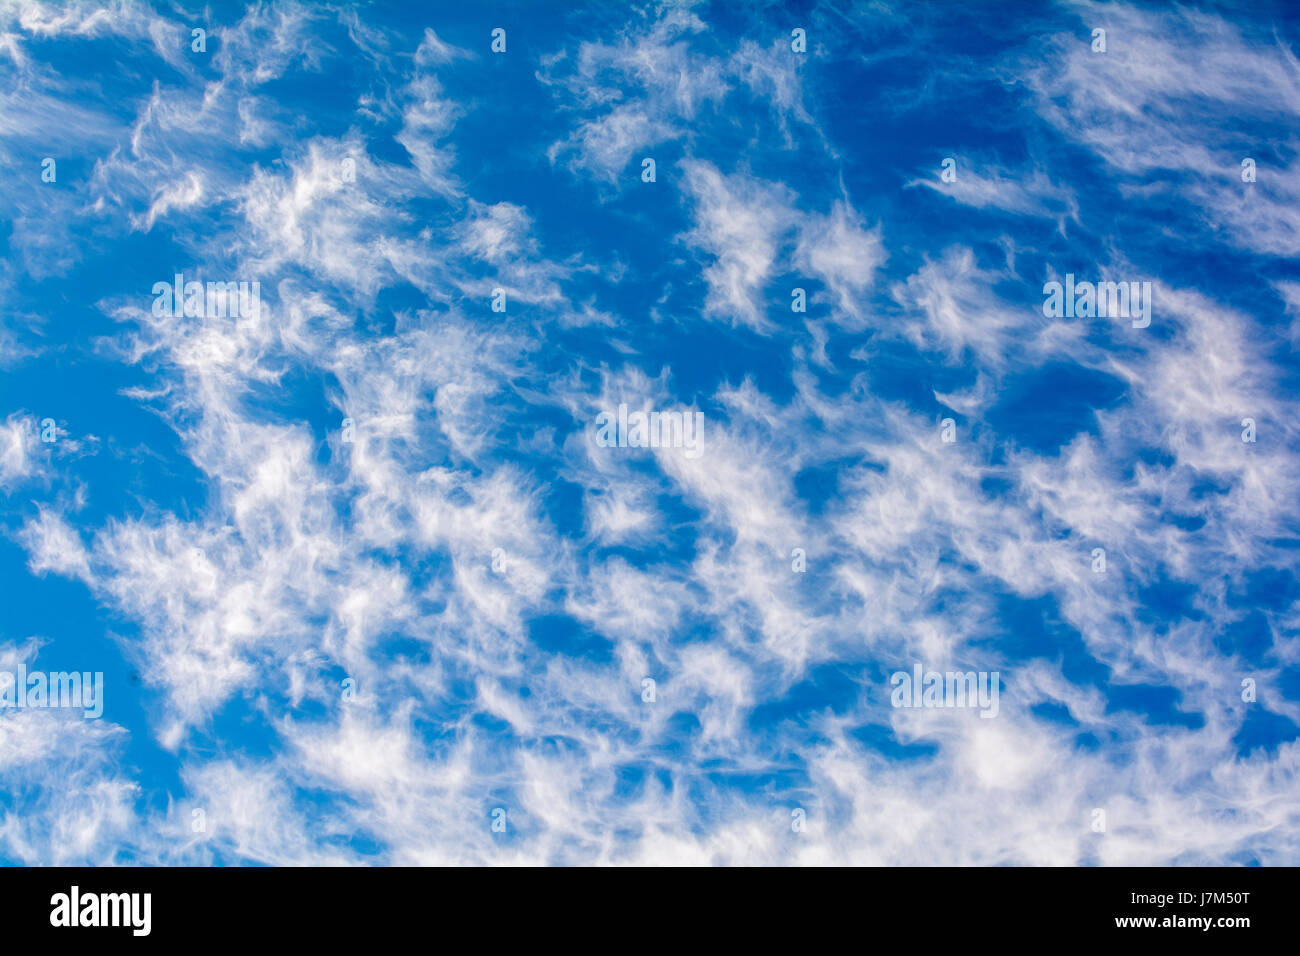 cute cirrus clouds in the blue sky picture perfect stock photo